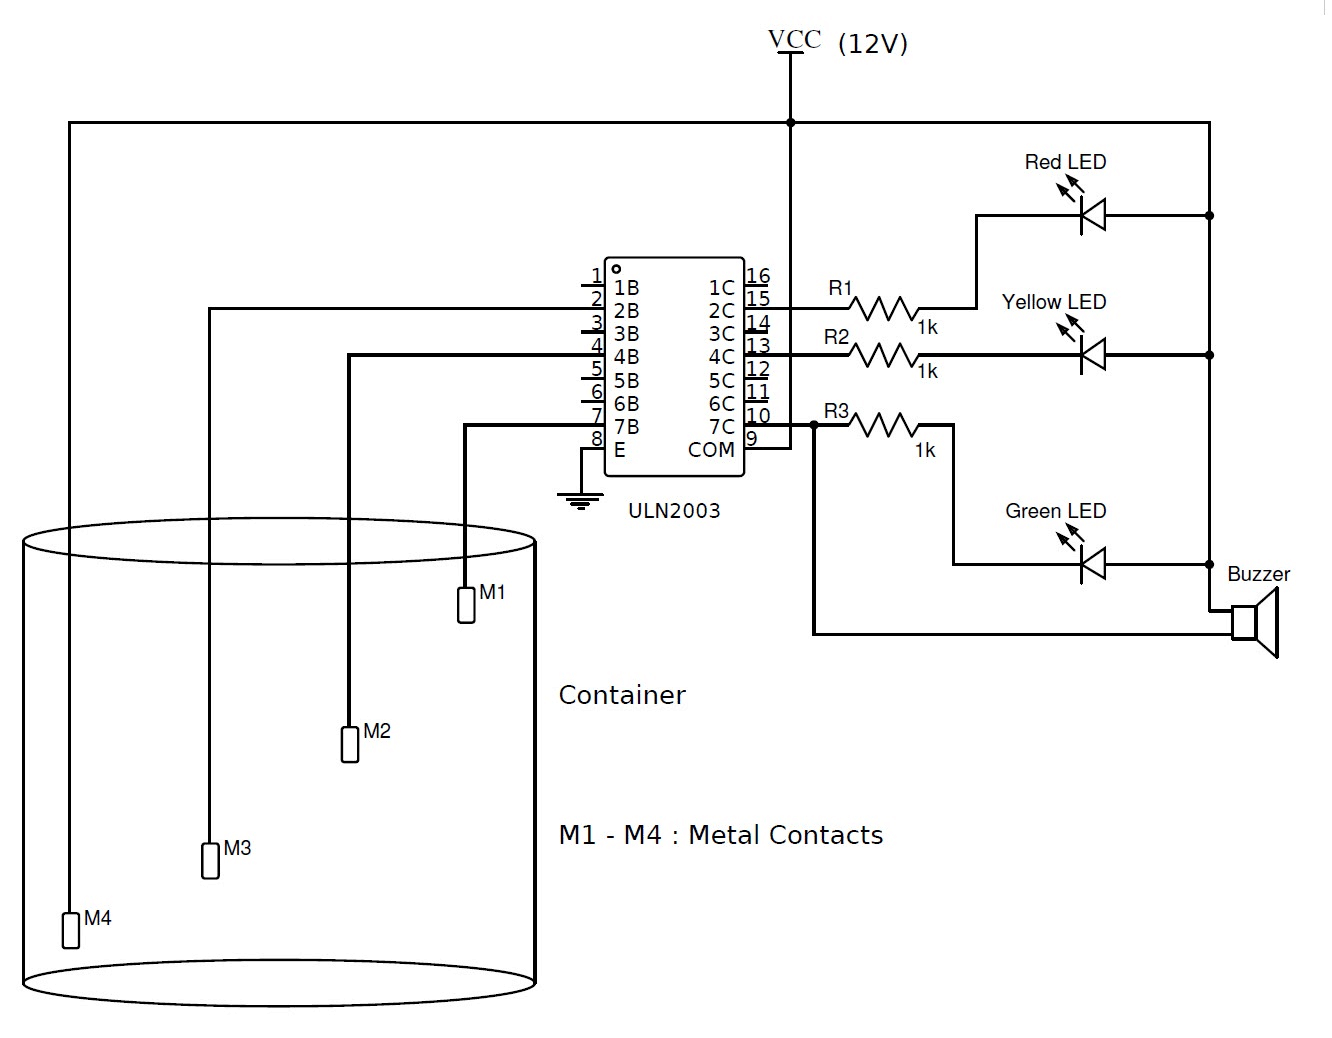 hight resolution of simple water level indicator with alarm 3 tested circuits in 2019 water level sensor detector monitor with alarm circuit schematic